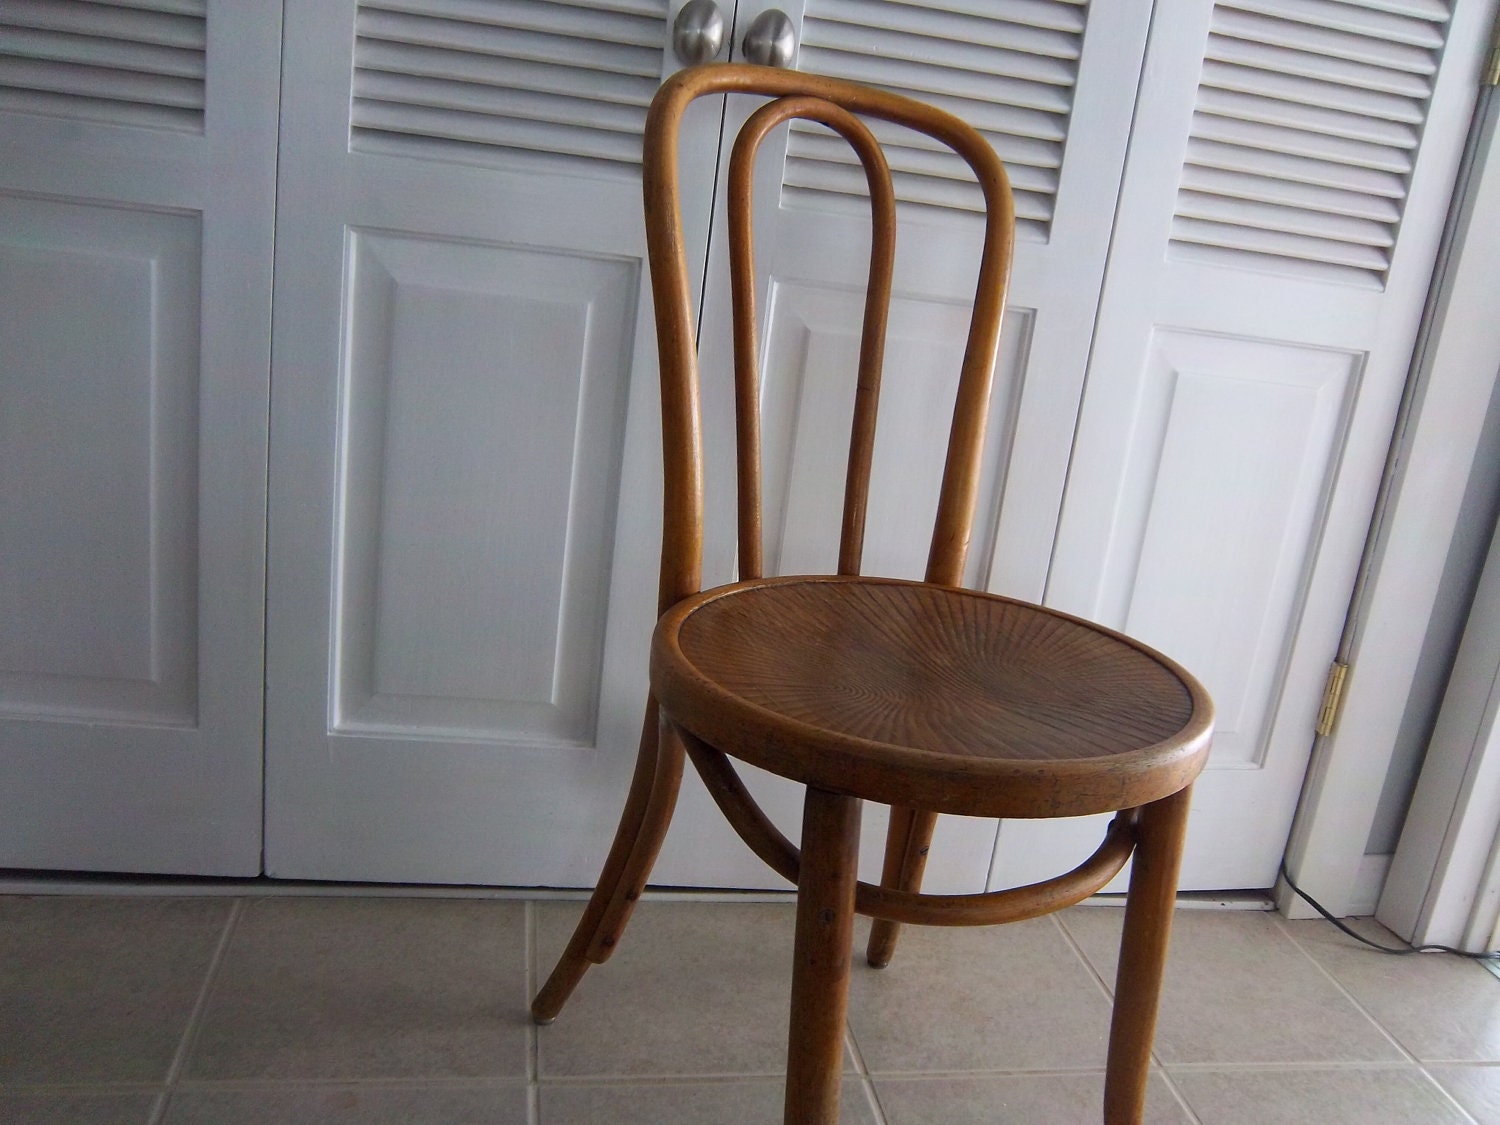 Antique thonet bentwood chair -  Zoom